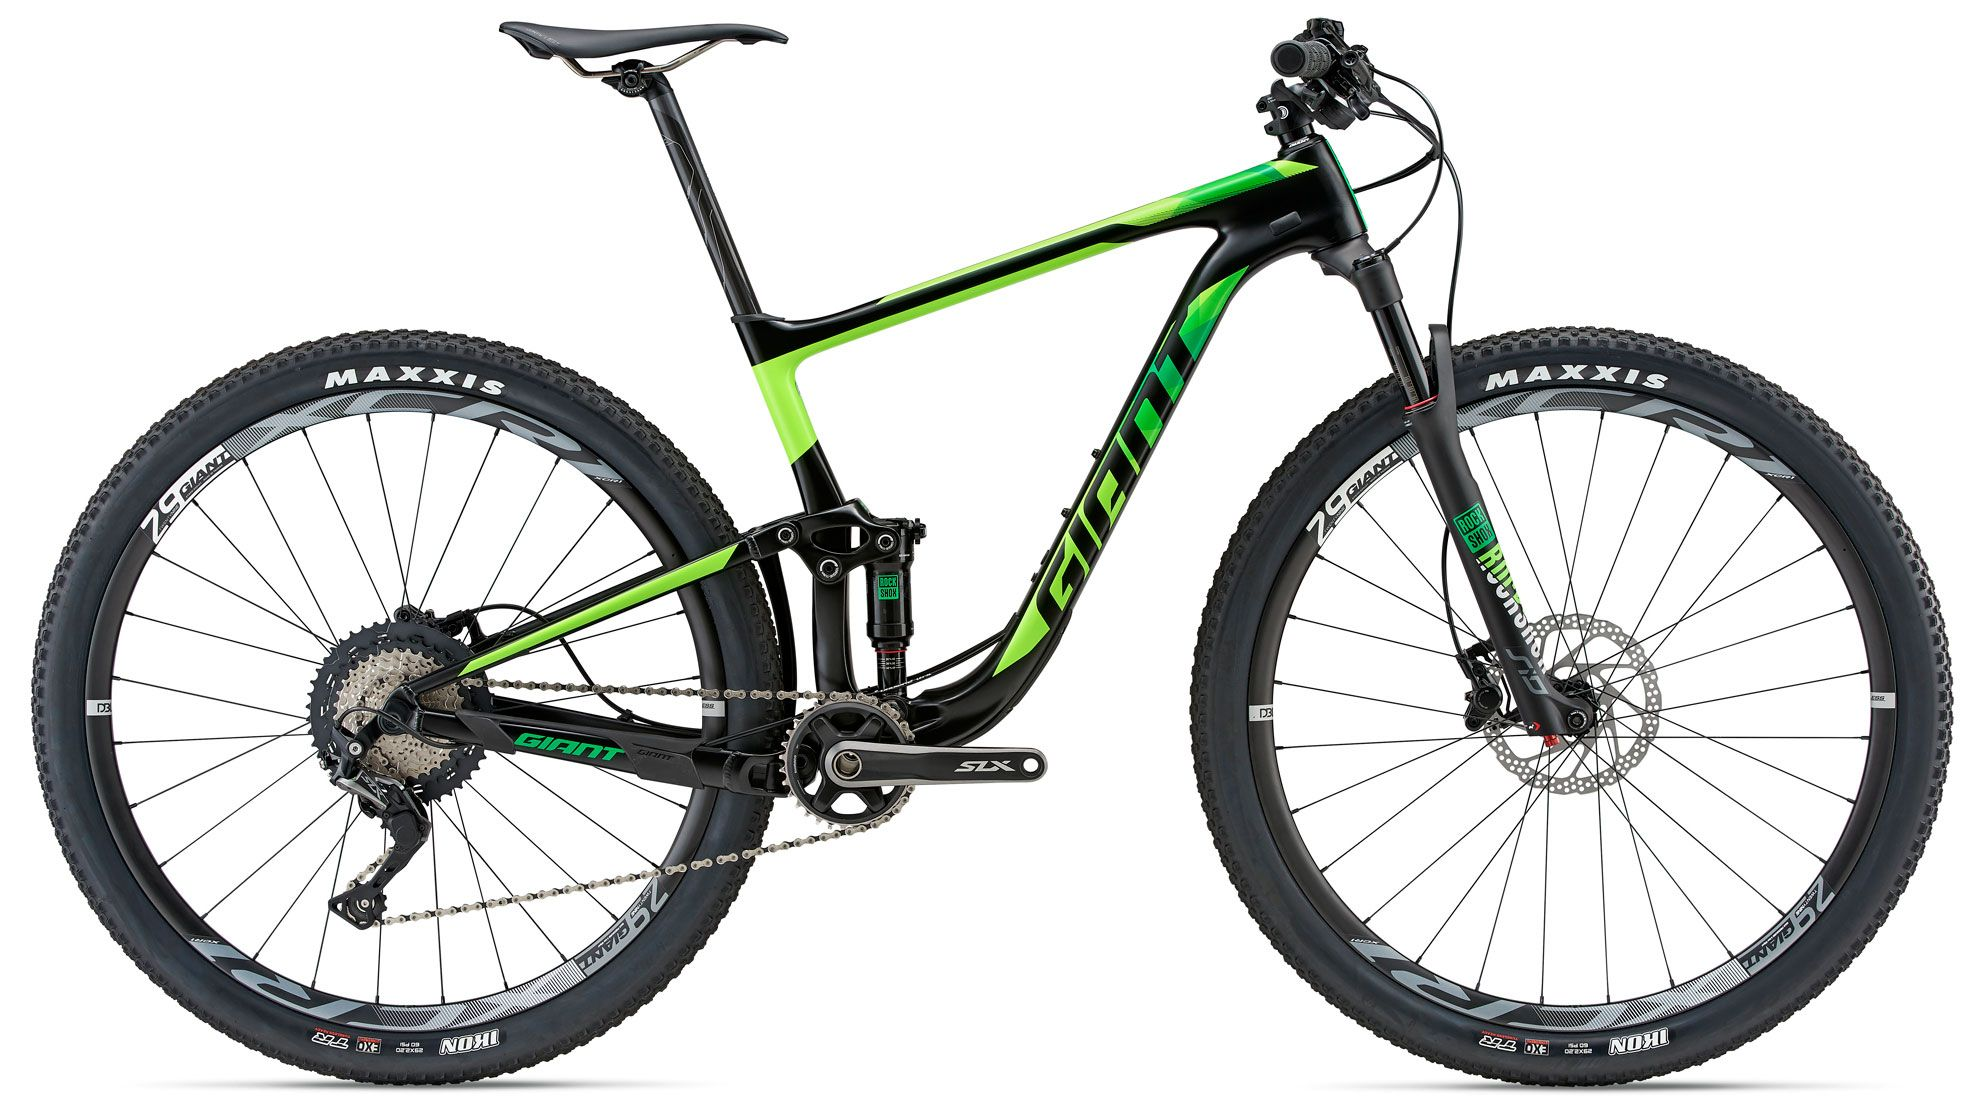 Велосипед Giant Anthem Advanced 29er 1 2018 велосипед giant trinity advanced pro 1 2016 page 8